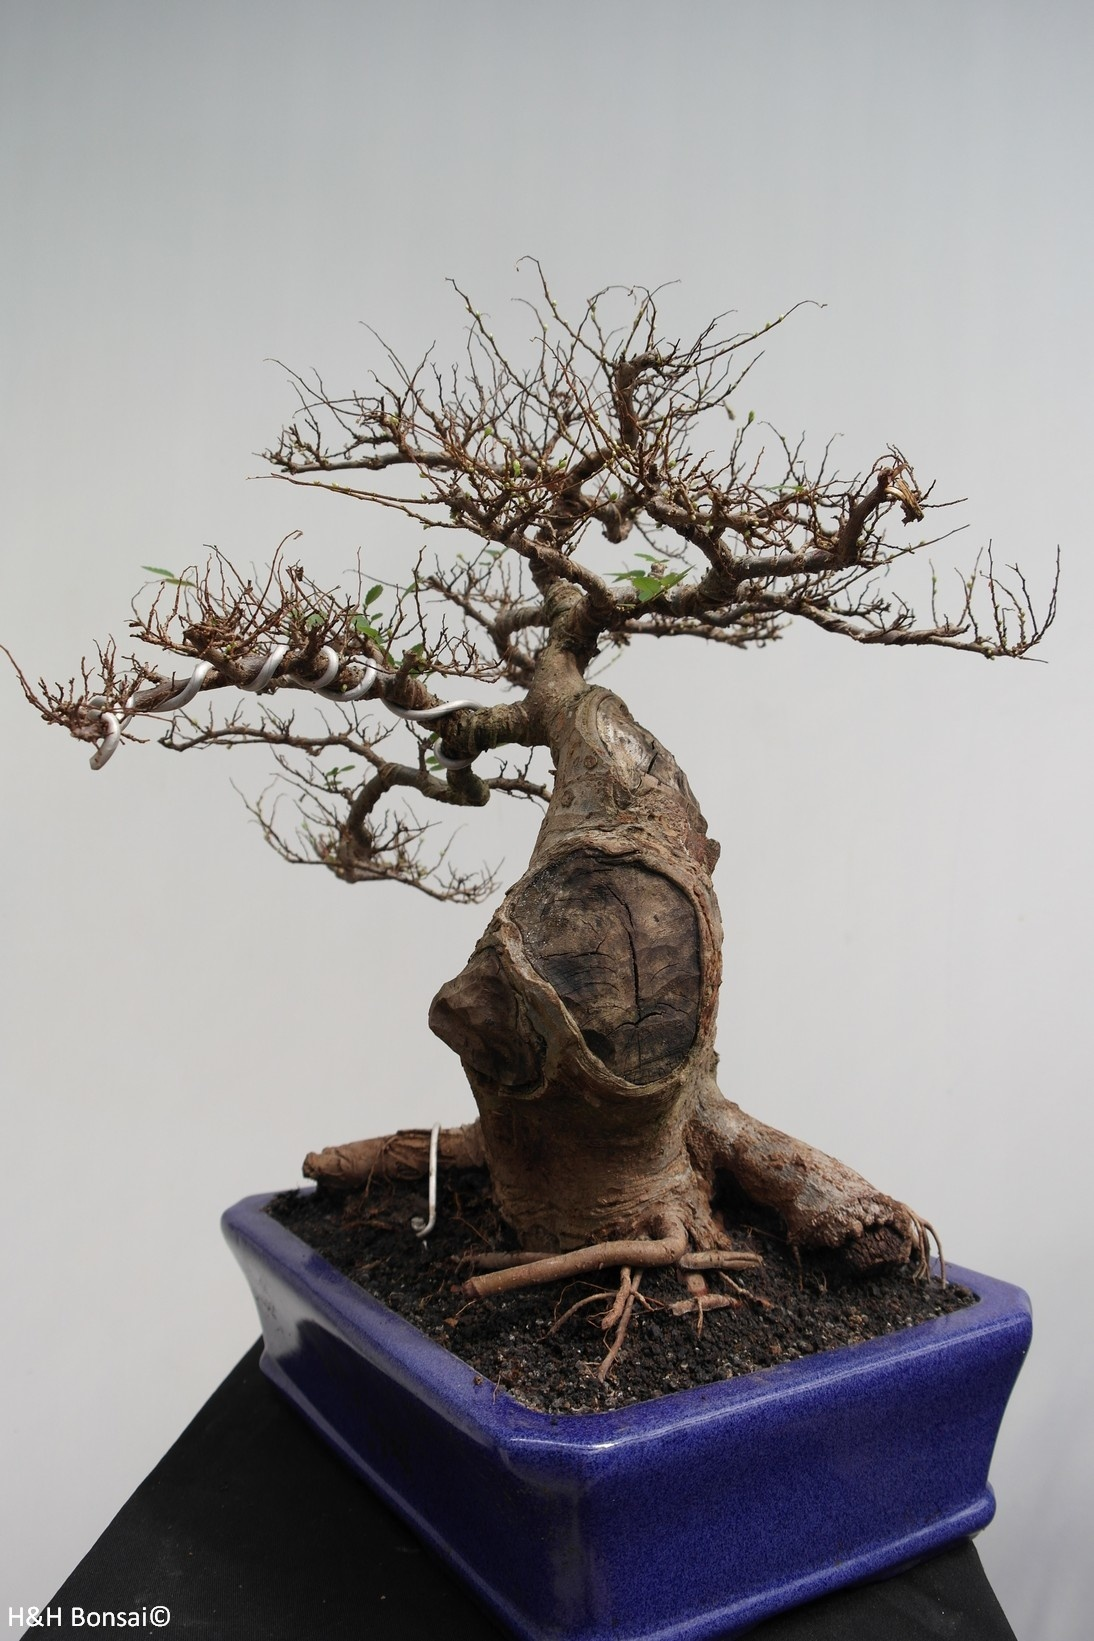 Bonsai Orme de chine, Zelkova, no. 7856